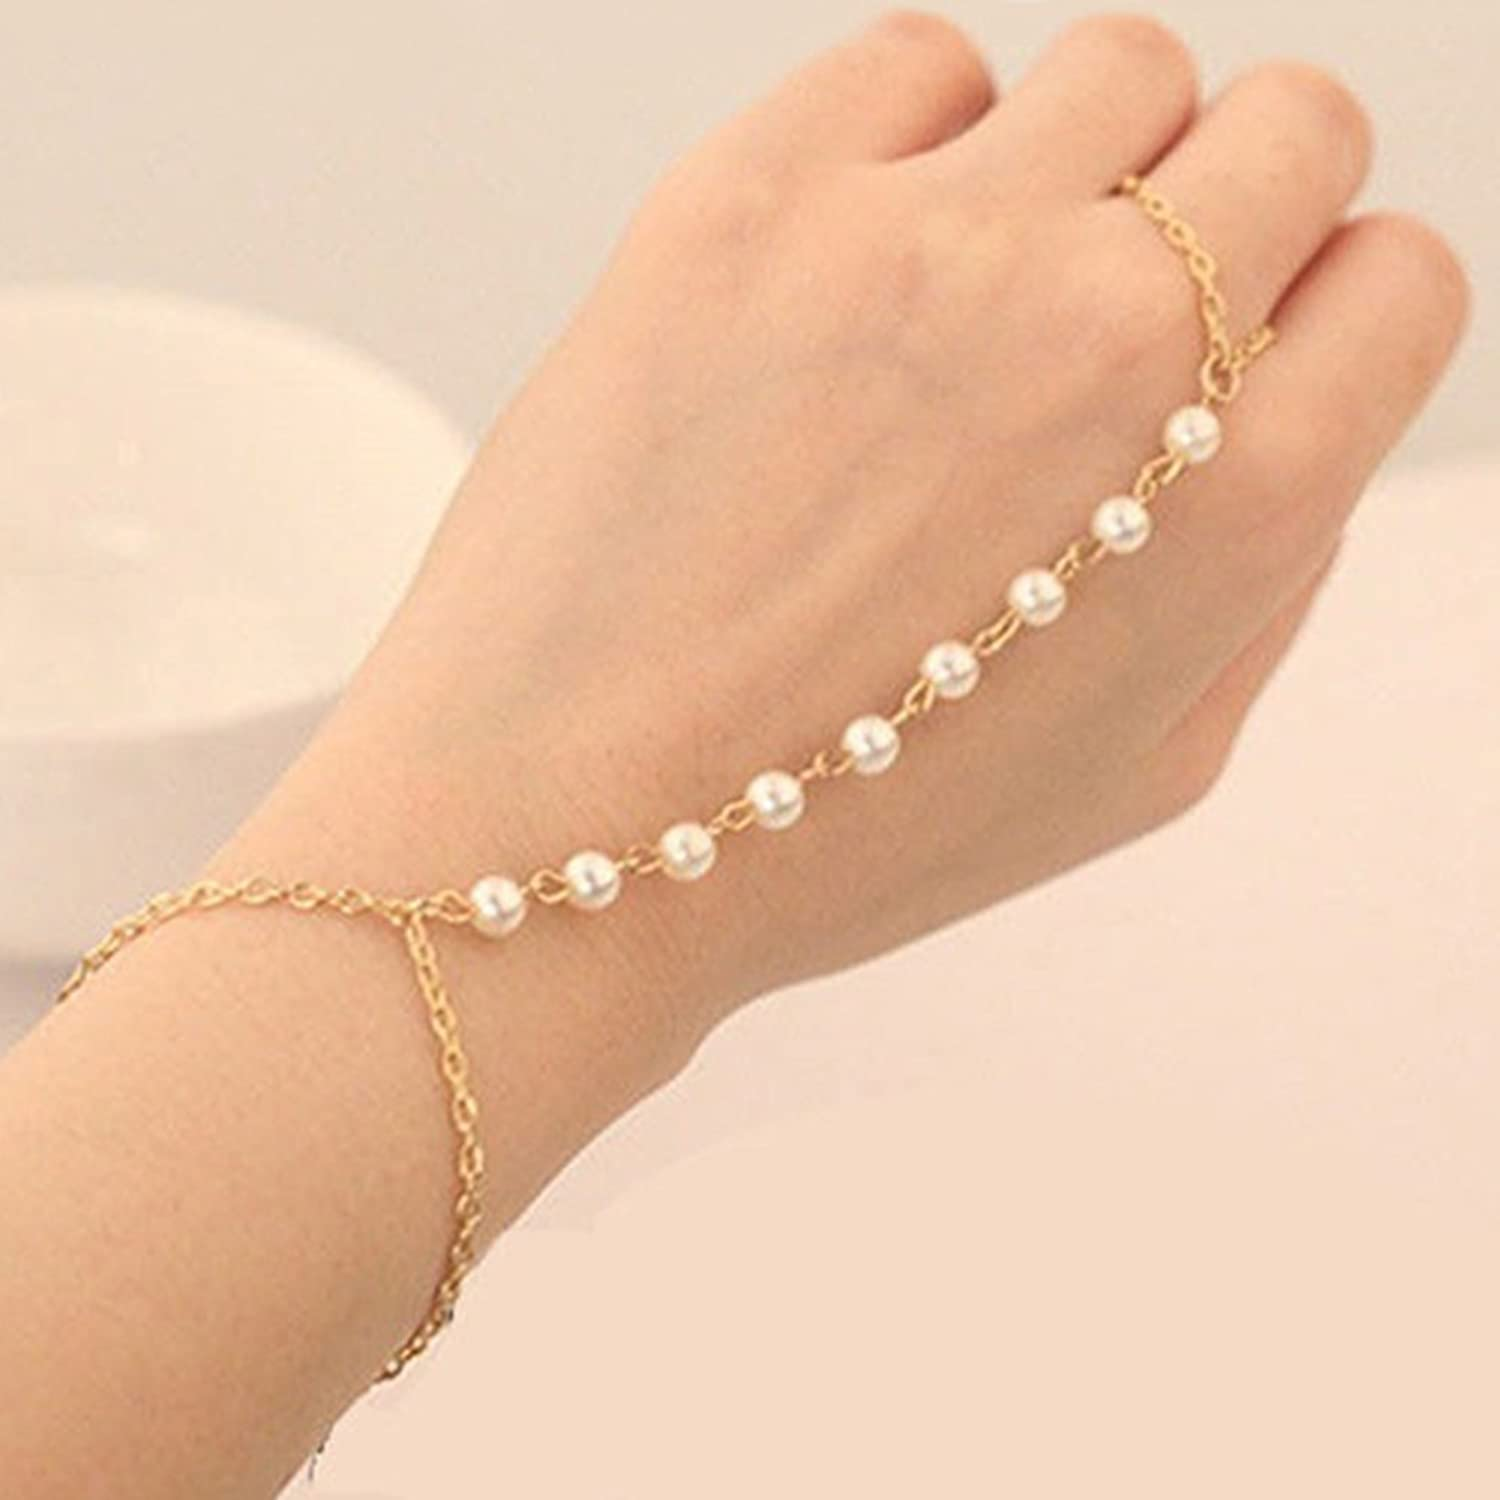 Gold Tone Charming Pearl Bracelet Beads Hand Chain Link Ring Amazon